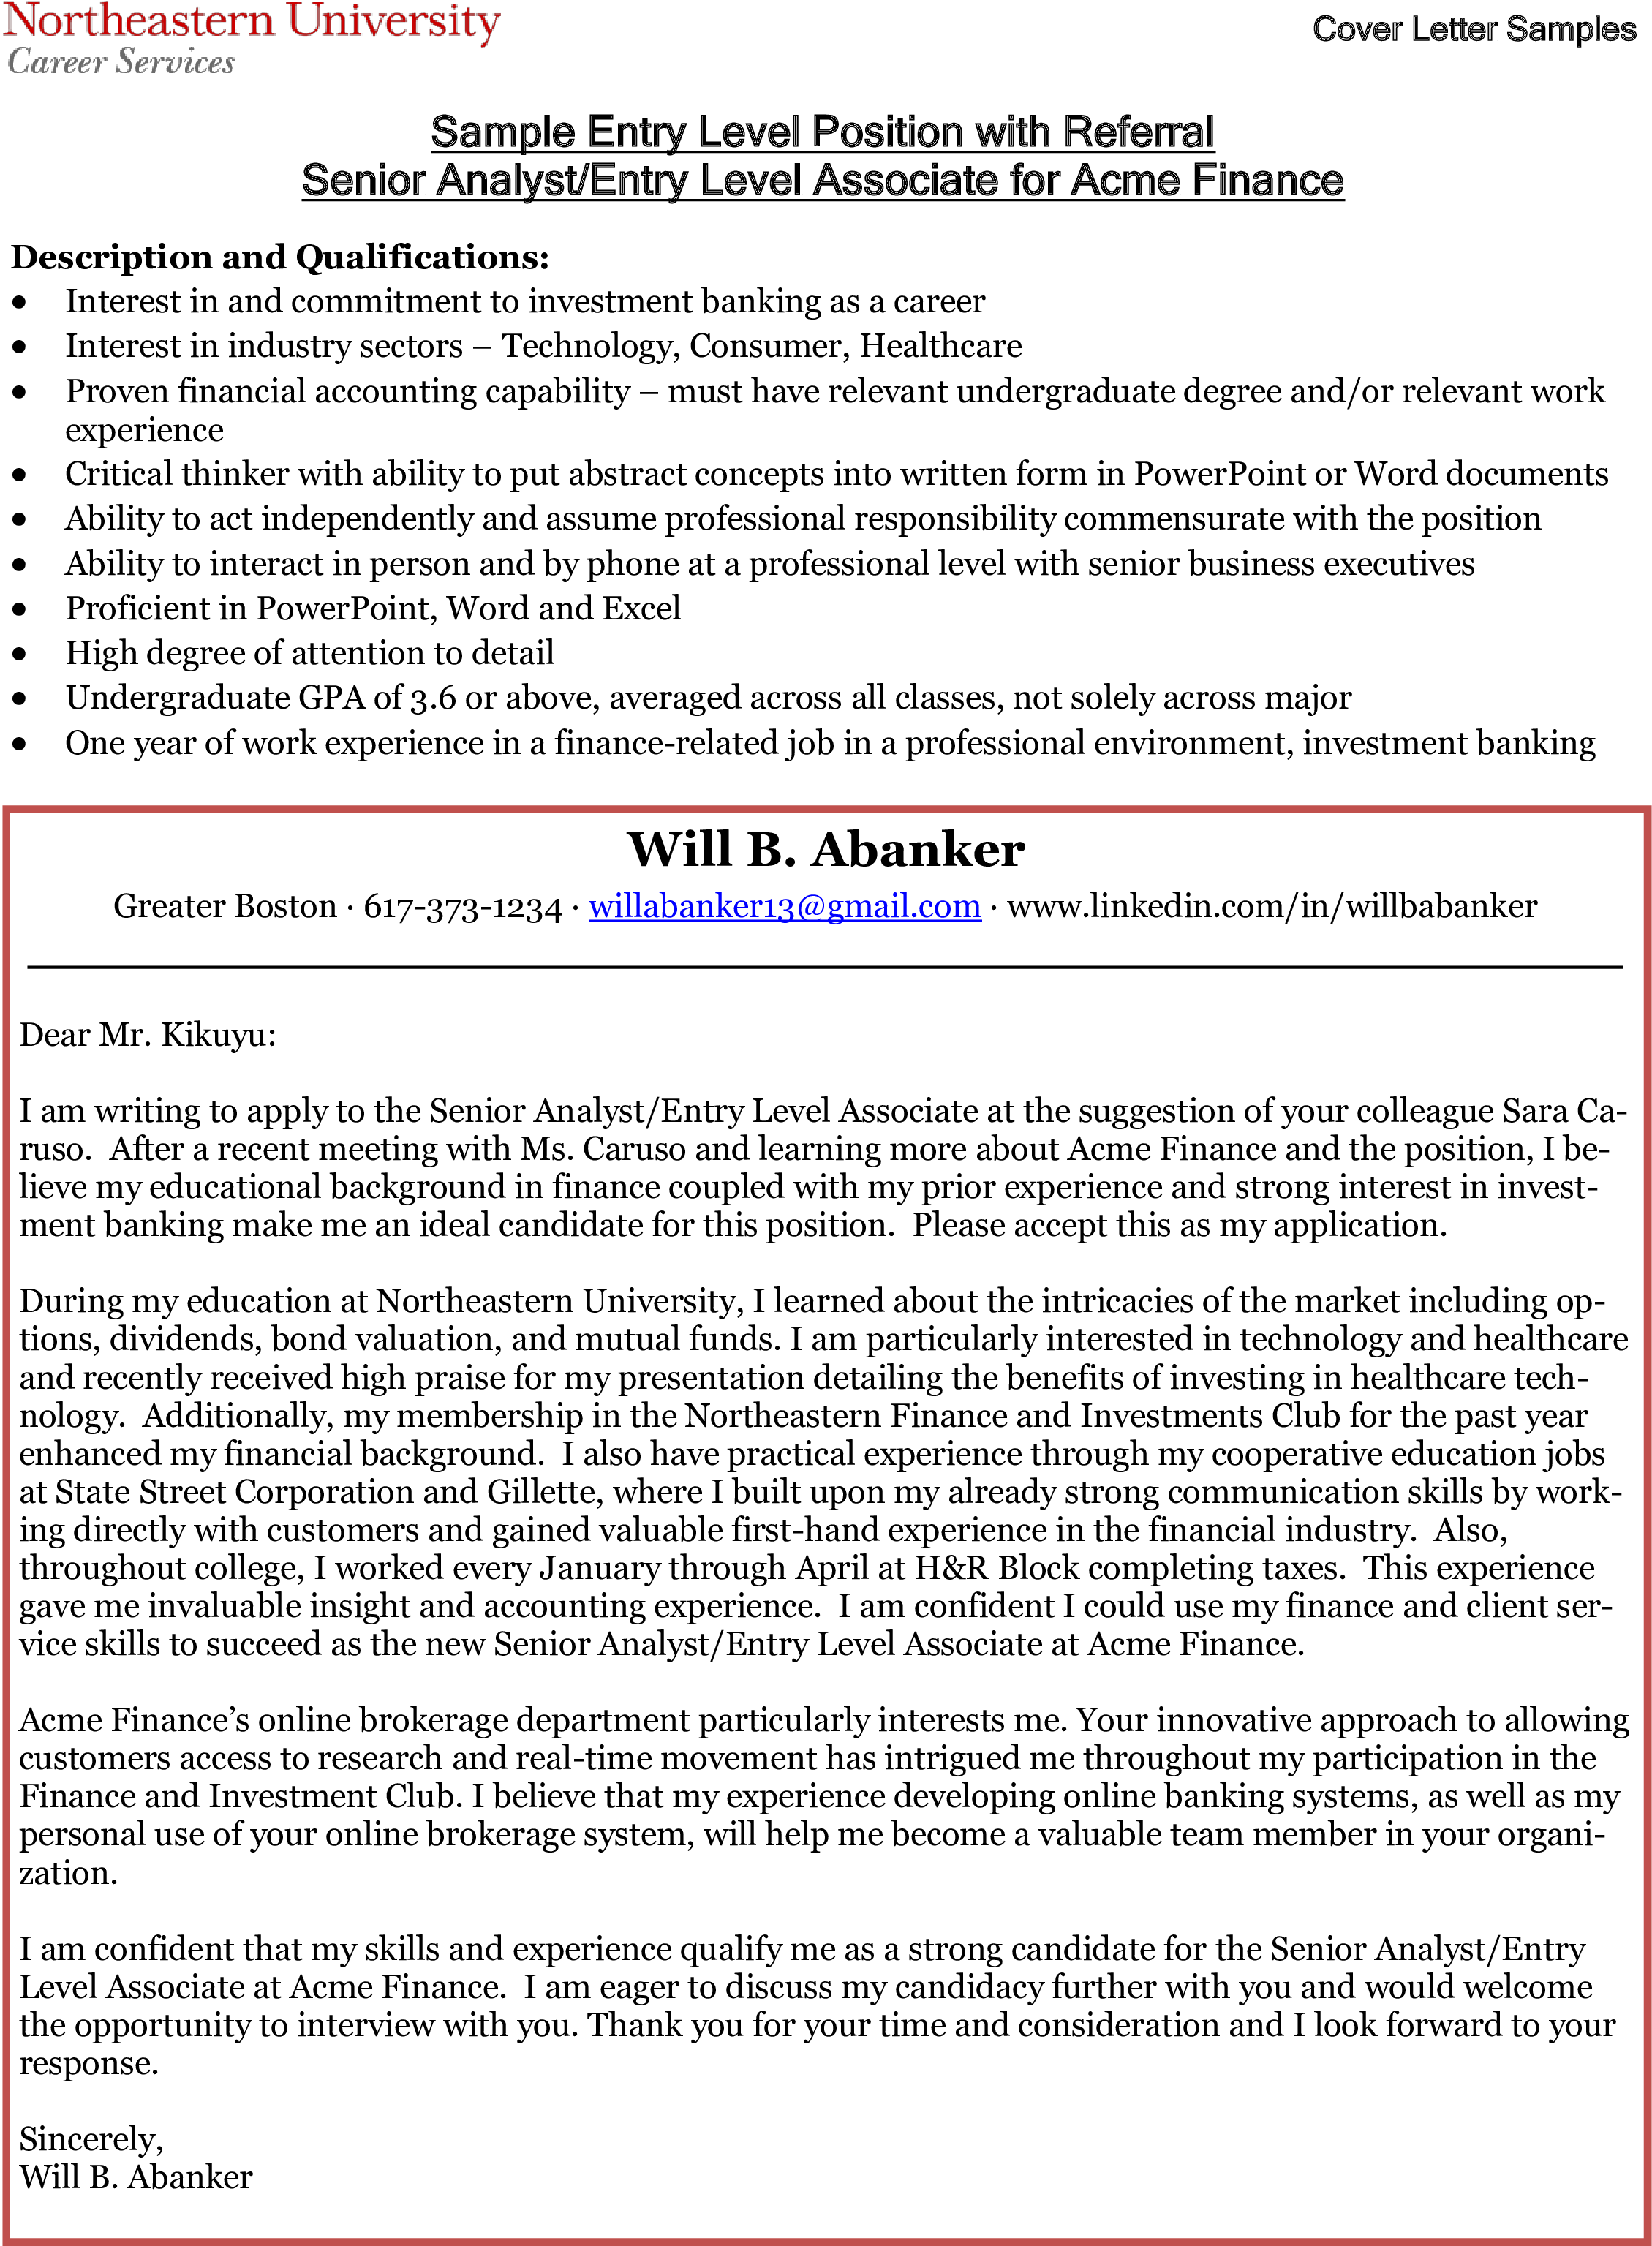 Cover Letter For Entry Level Financial Analyst from www.pngkey.com